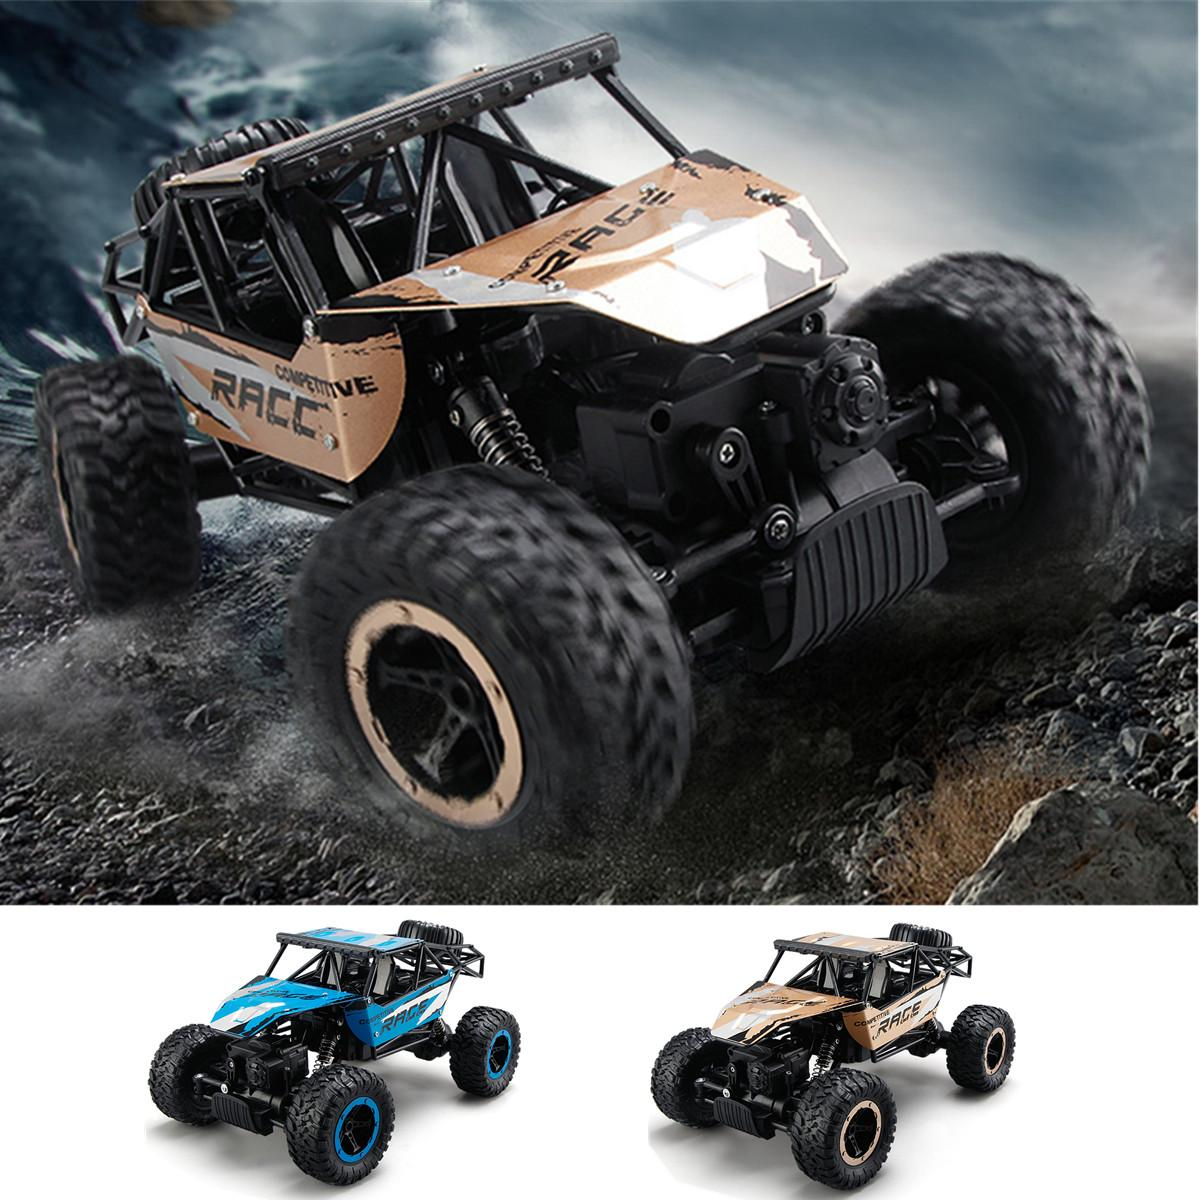 2.4G Remote Control 4WD RC Monster Truck Off-Road Vehicle Buggy Crawler Car New USB 4WD Die-cast Off-road Vehicle rc car amphibious rock crawler car 4wd 2 4g dual motor waterproof monster truck remote control off road vehicle toys kids hobby